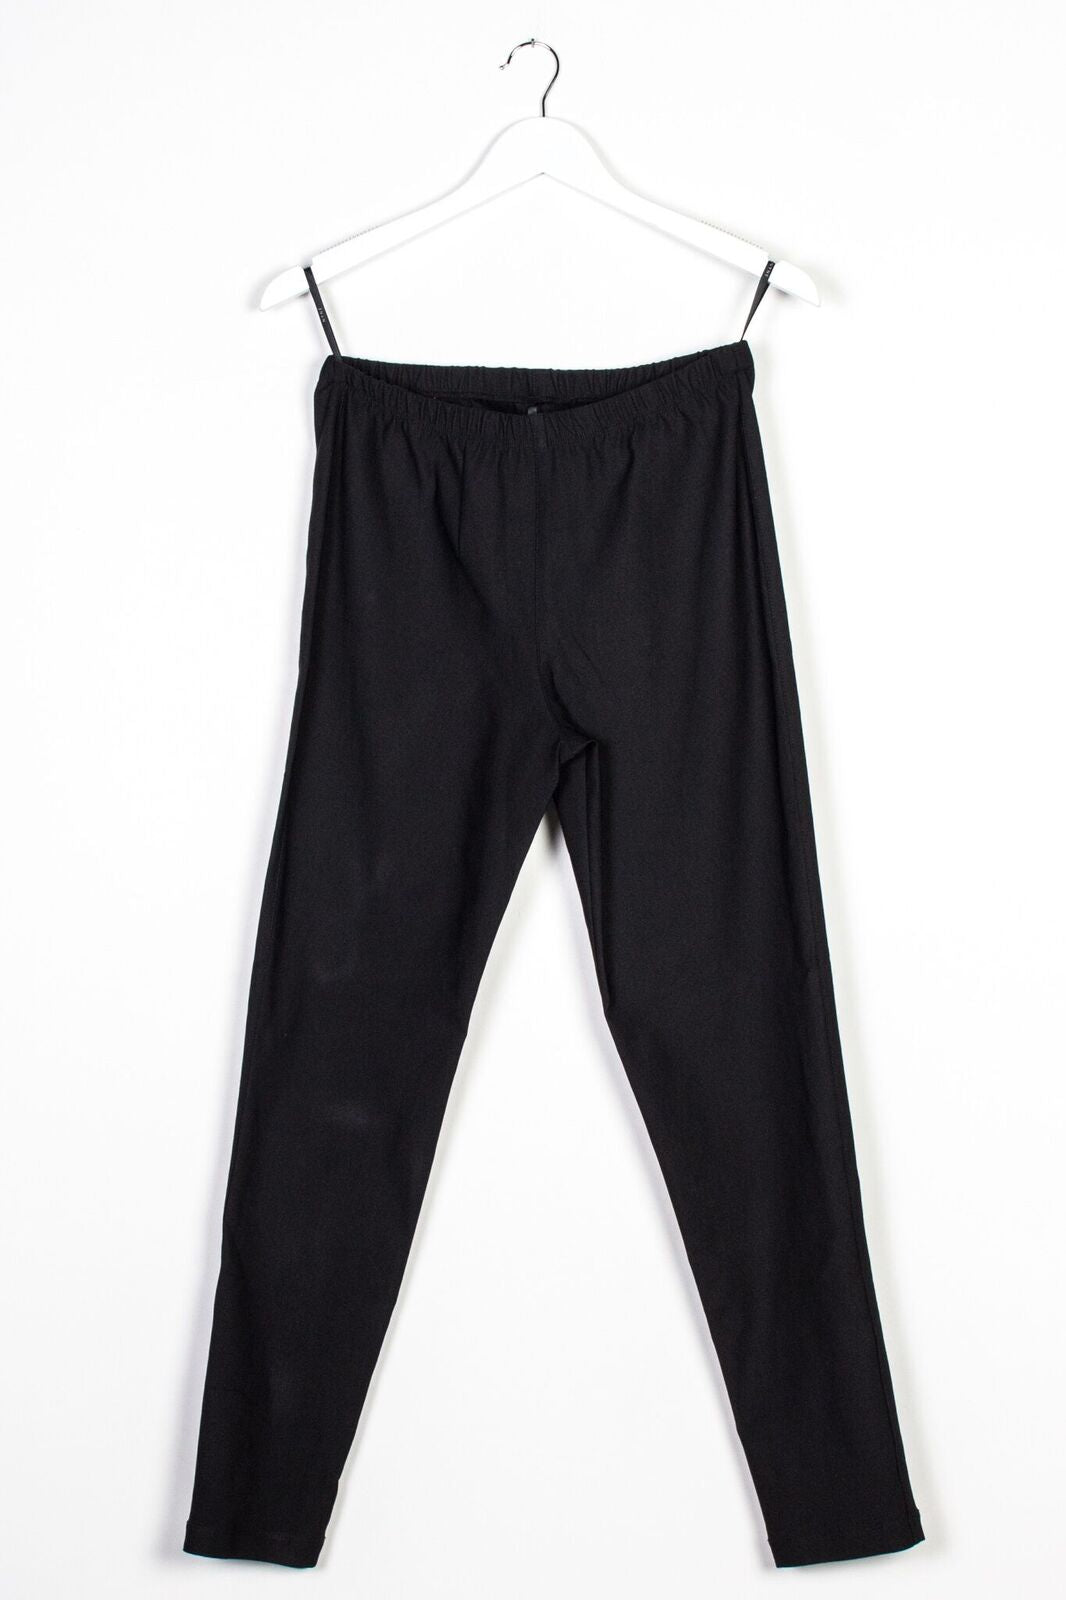 Nyne Peonix Pant Black Work Pants NZ Designer Clothing Shop Made in New Zealand Stockist shops auckland parnell